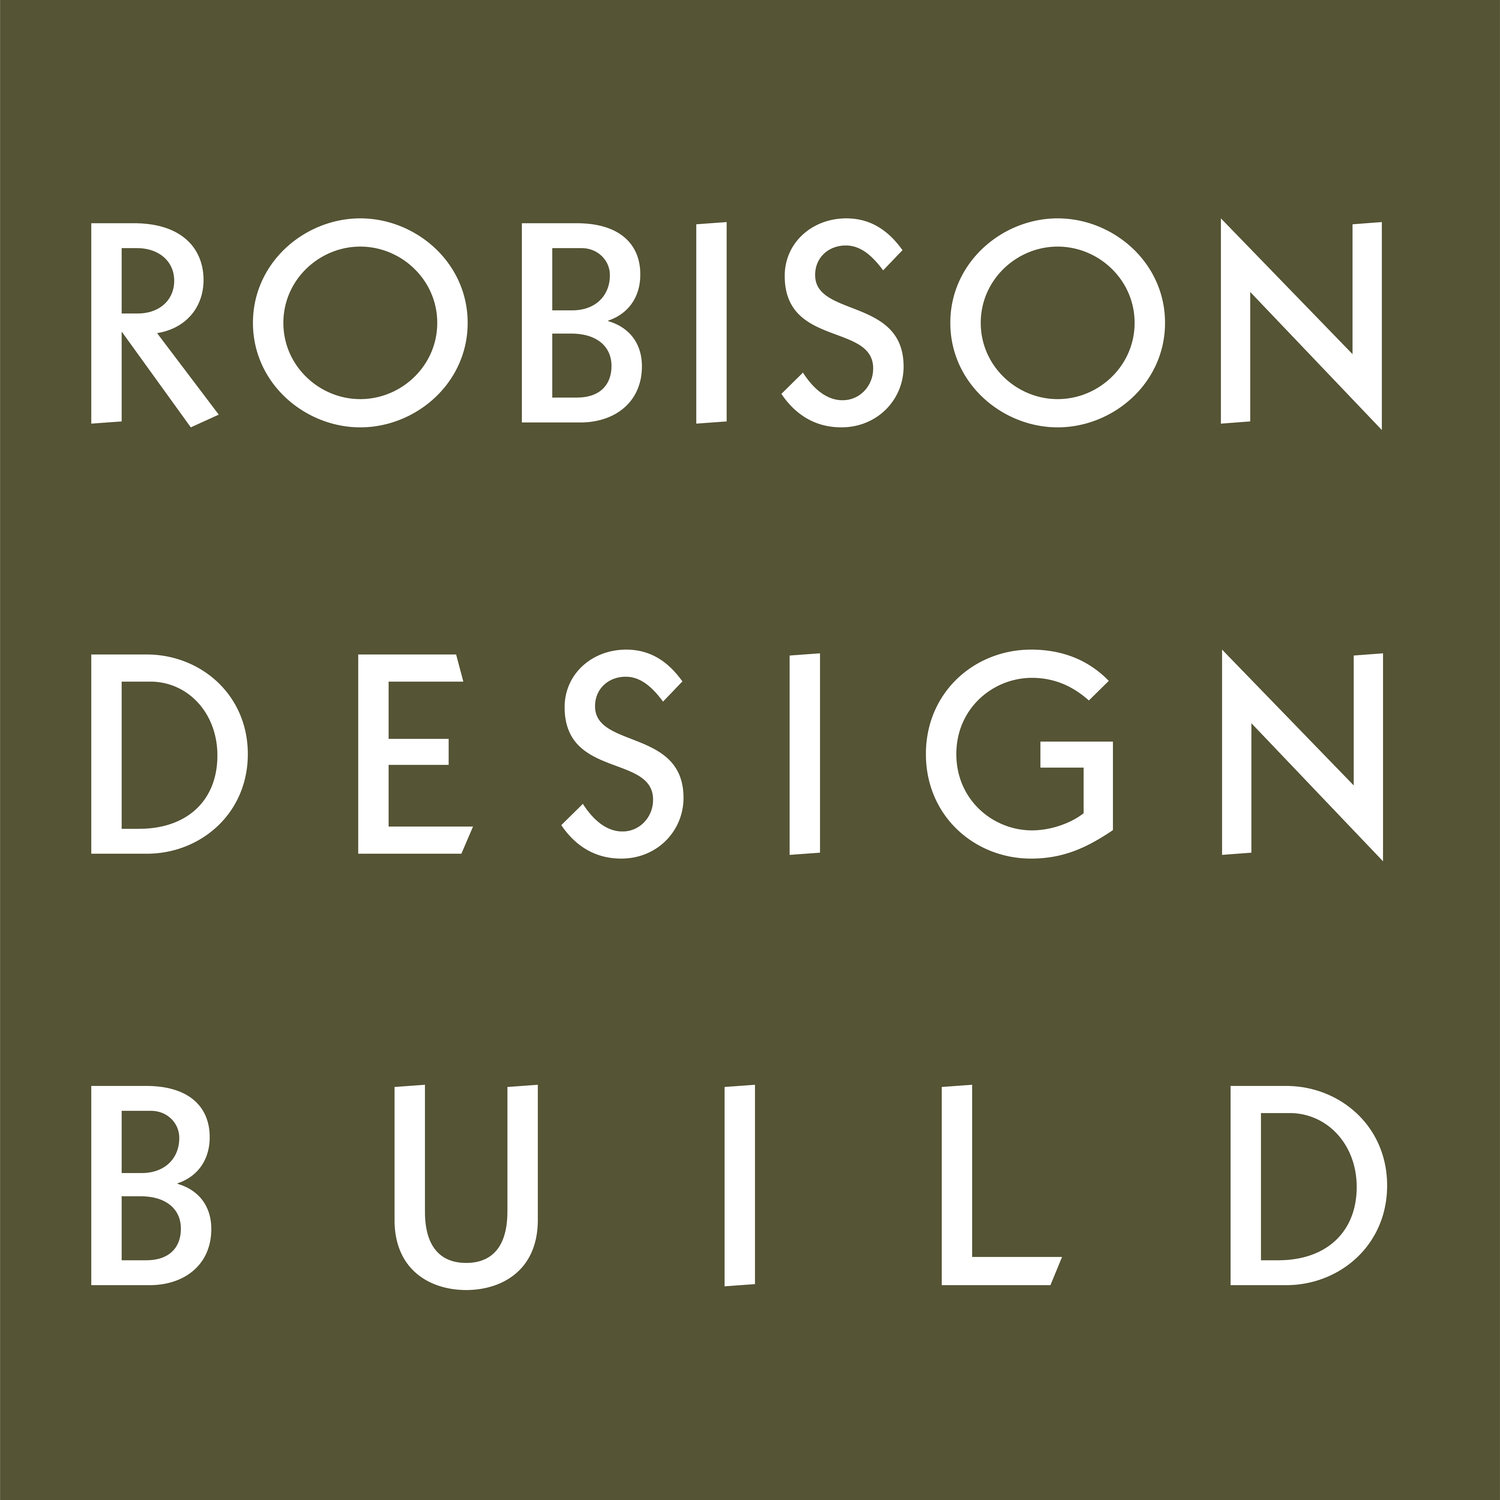 robison design build